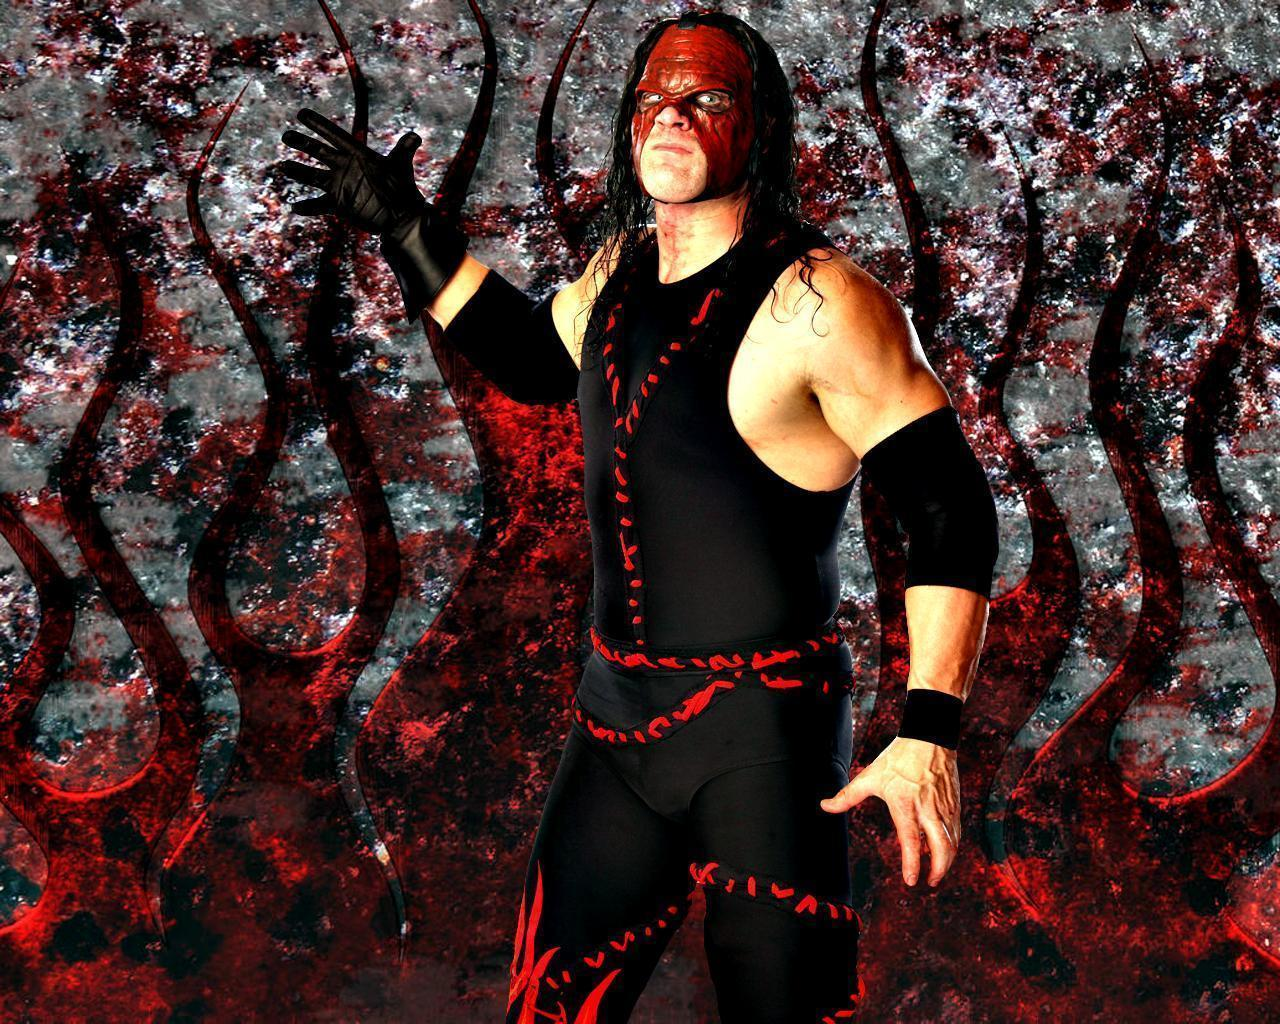 Wallpapers For > Wwe Kane Wallpaper 2014